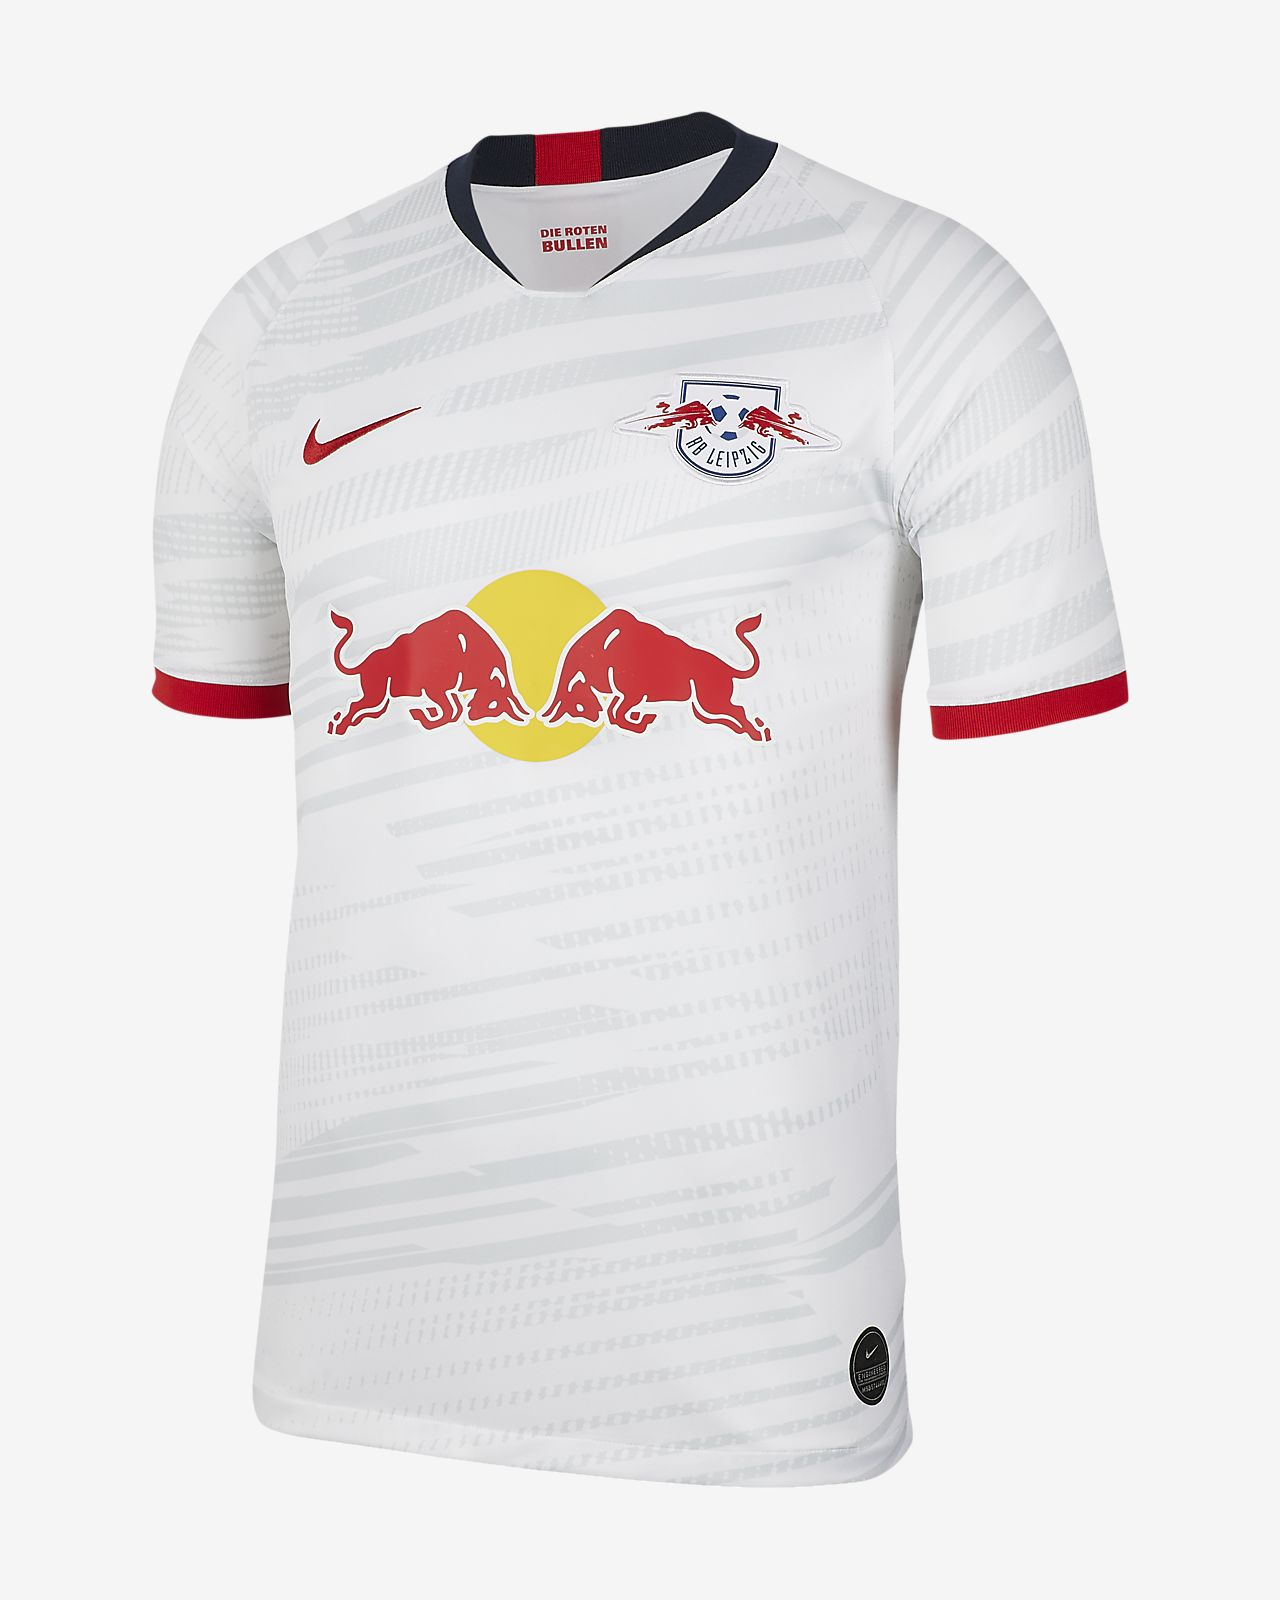 RB Leipzig 2019/20 Stadium Home fotballdrakt for herre